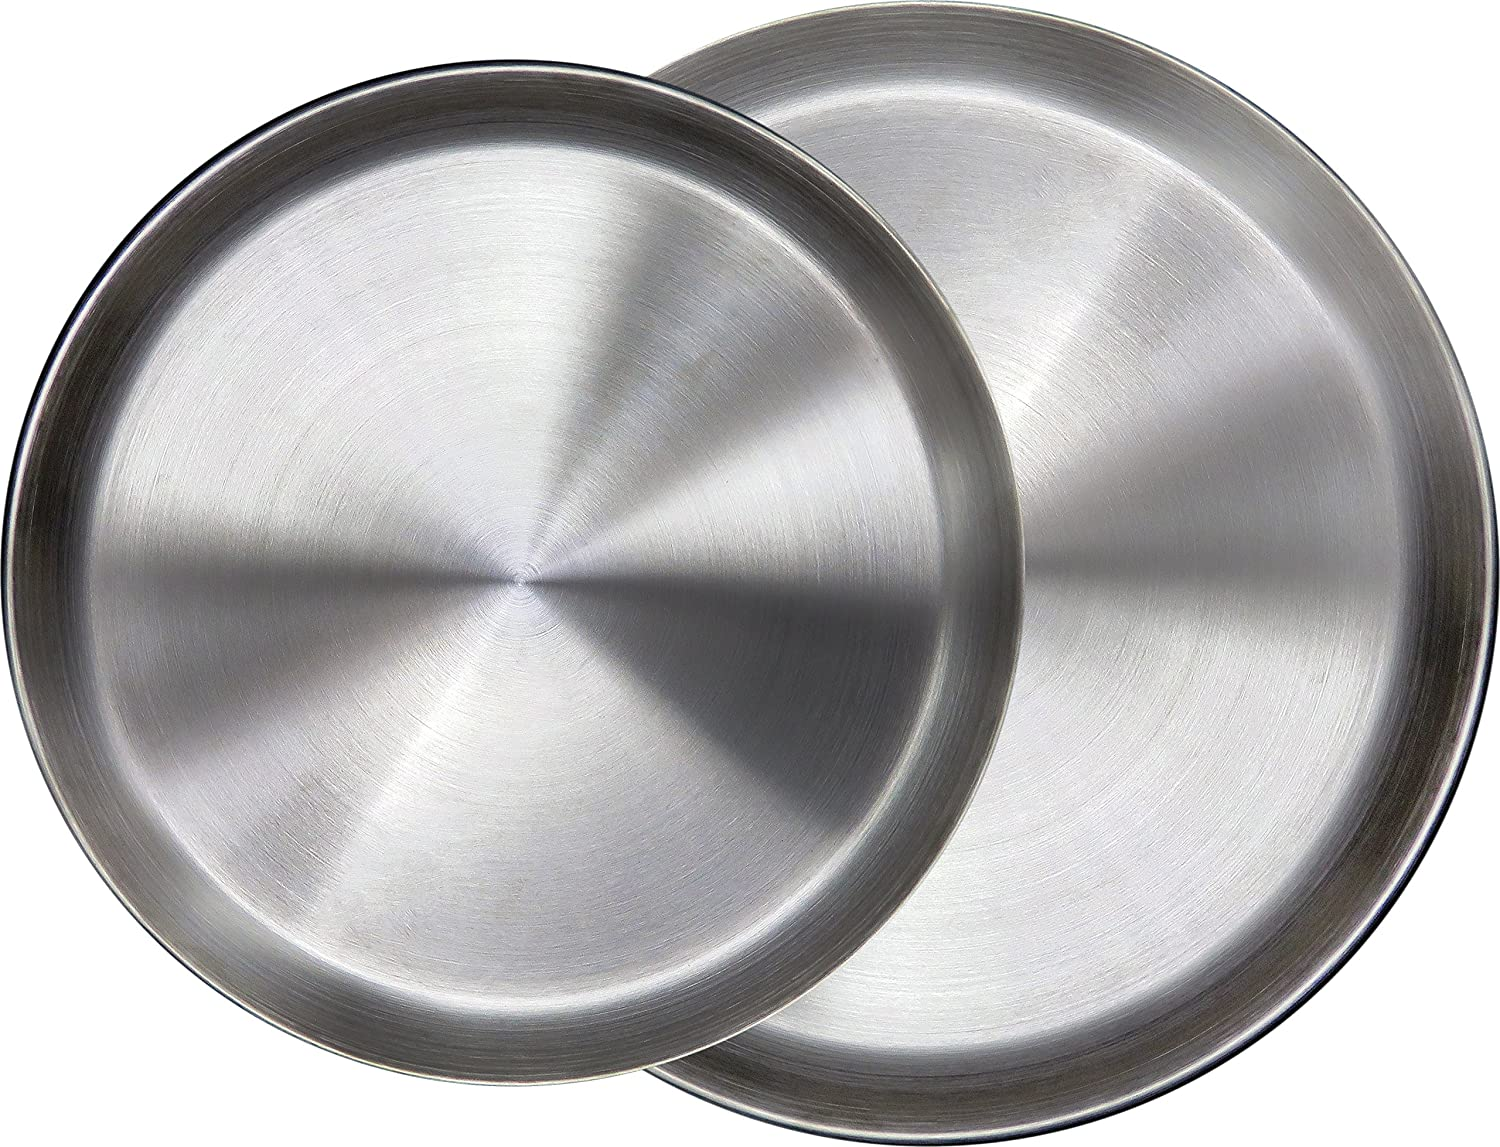 "Immokaz Matte Polished 14.0 inch 304 Stainless Steel Round Plates Dish, for Dinner Plate, Camping Outdoor Plate, Baby safe, Toddler, Kids, BPA Free (1-Pack) (XL (14.0""))"